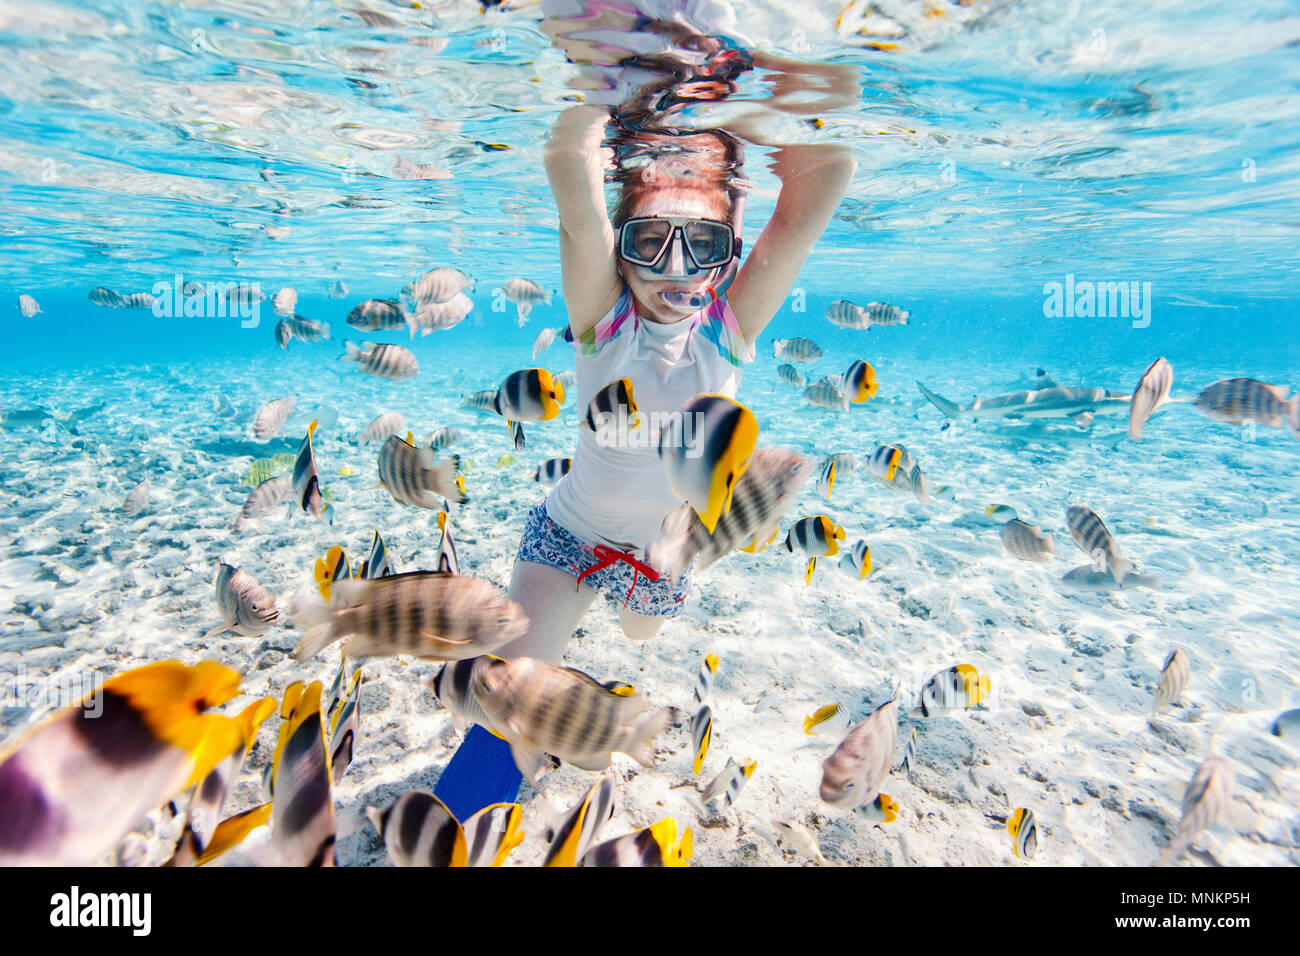 Woman snorkeling in clear tropical waters among colorful fish - Stock Image